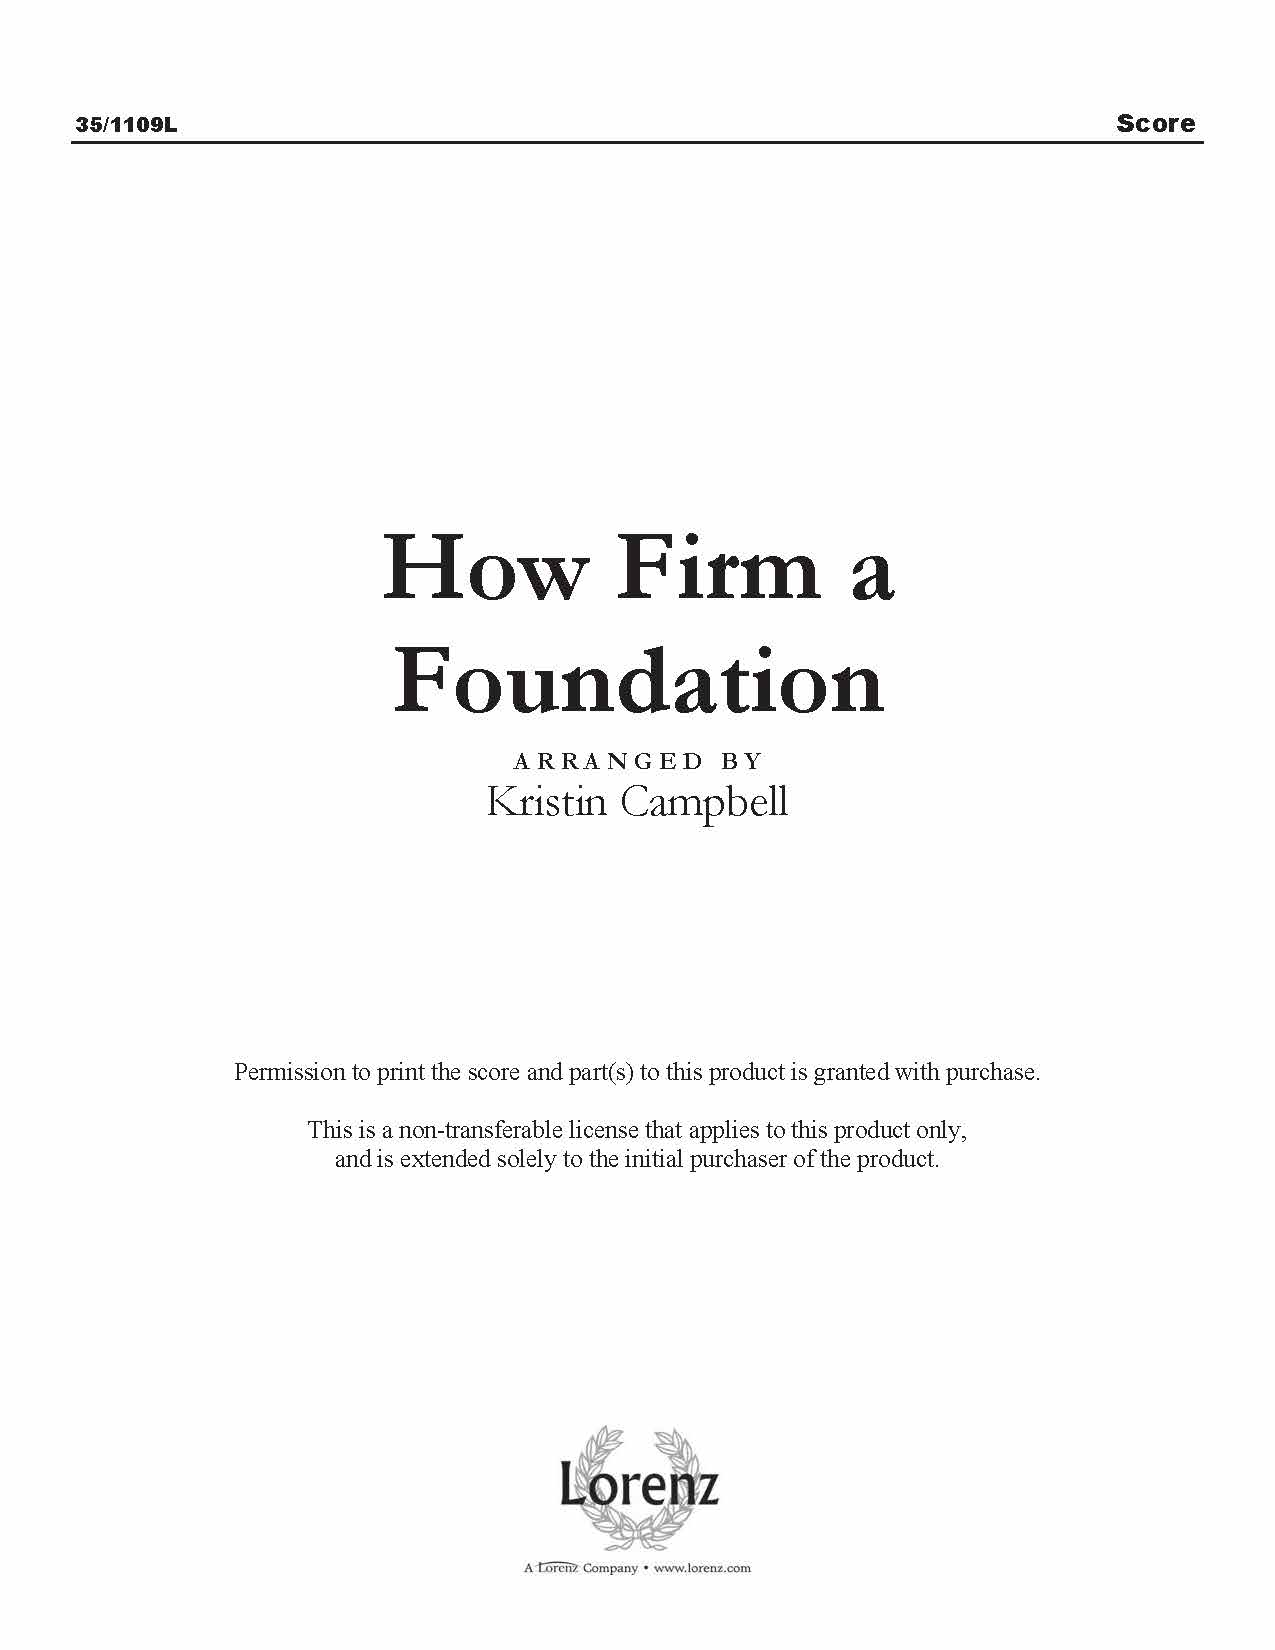 How Firm a Foundation (Digital Delivery)